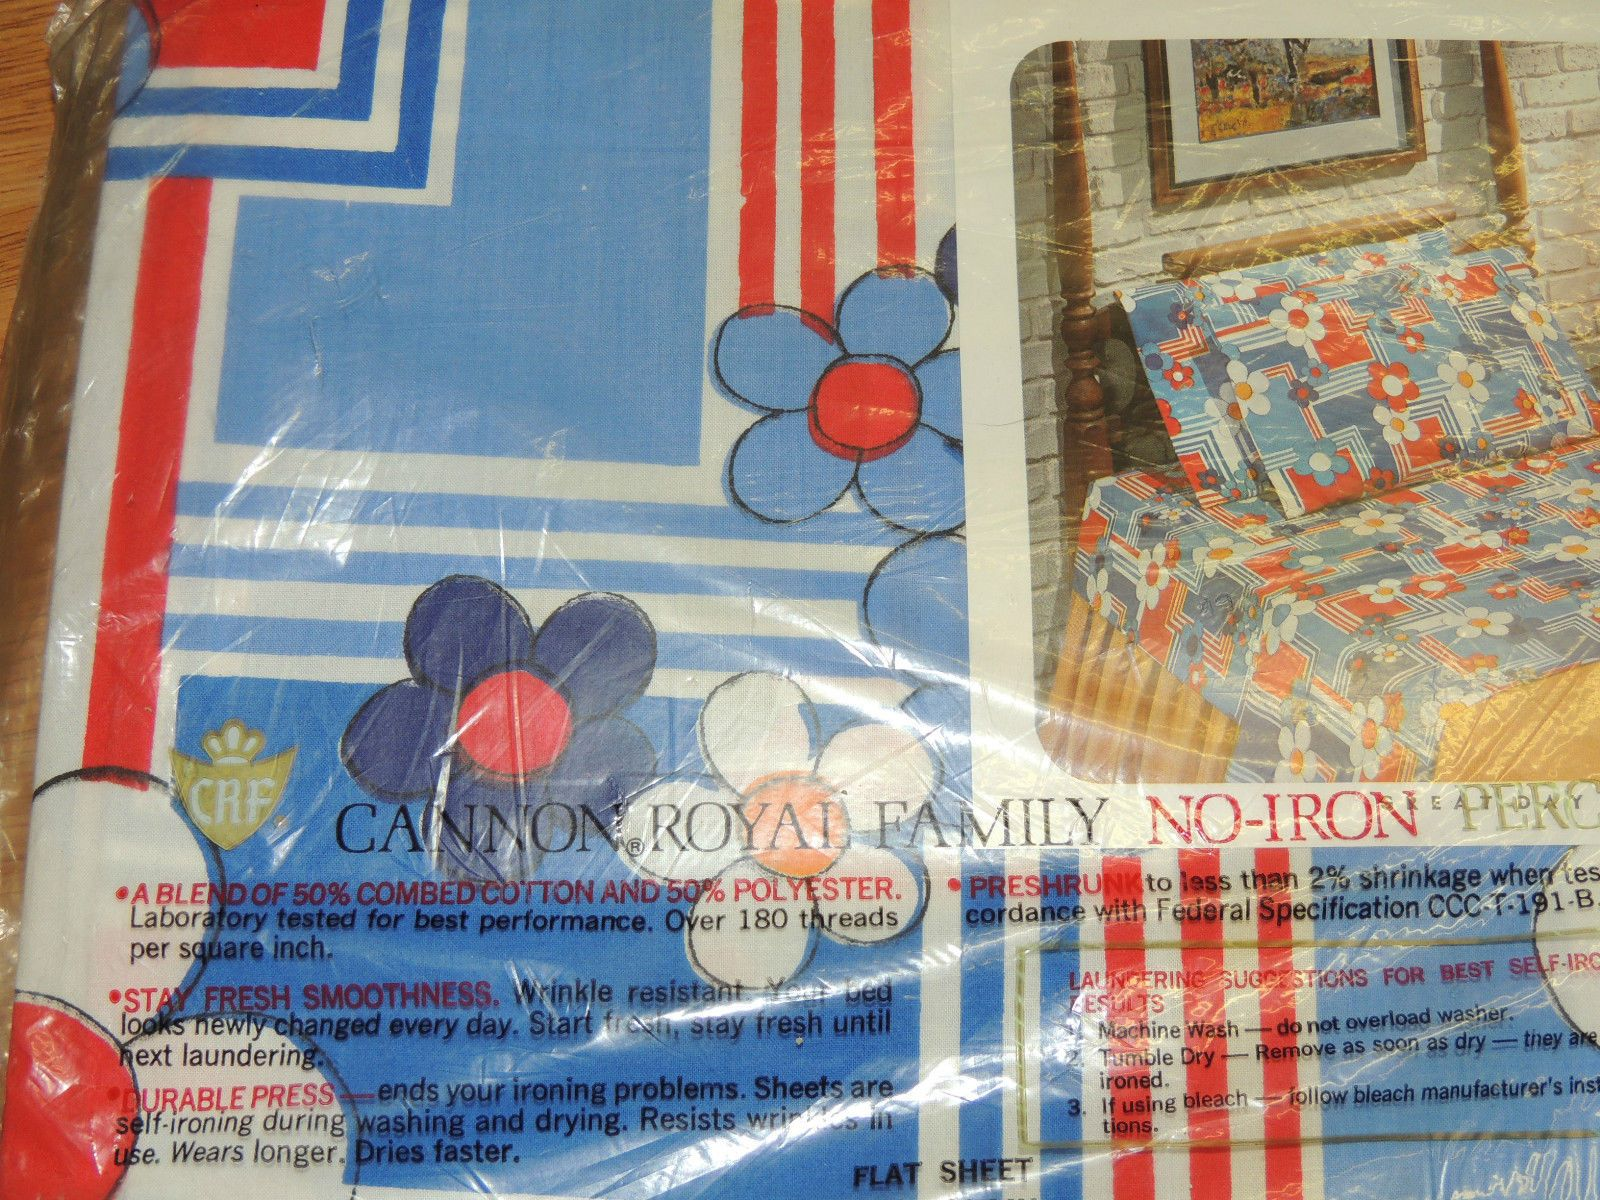 details about vintage cannon royal family full flat sheet red  - details about vintage cannon royal family full flat sheet red white bluedaisy geometric retro